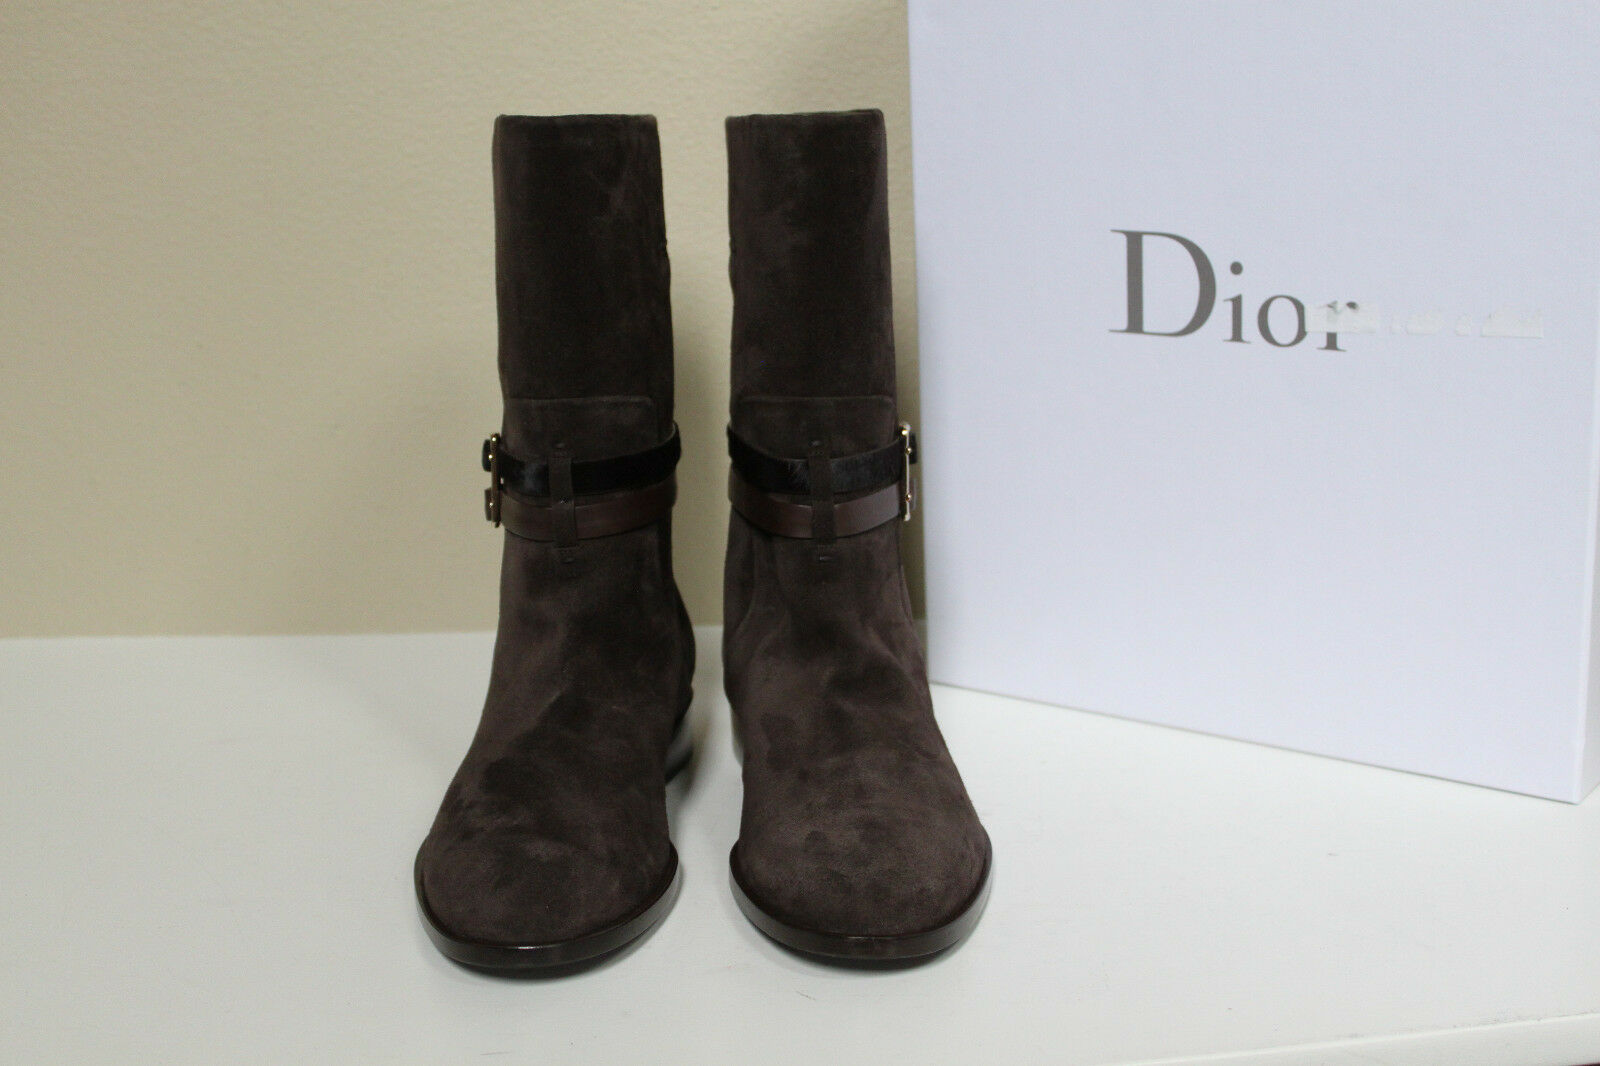 New 9.5 / 39.5 Christian Dior Braun Suede schuhes buckle strapped Logo Boot schuhes Suede 13152a